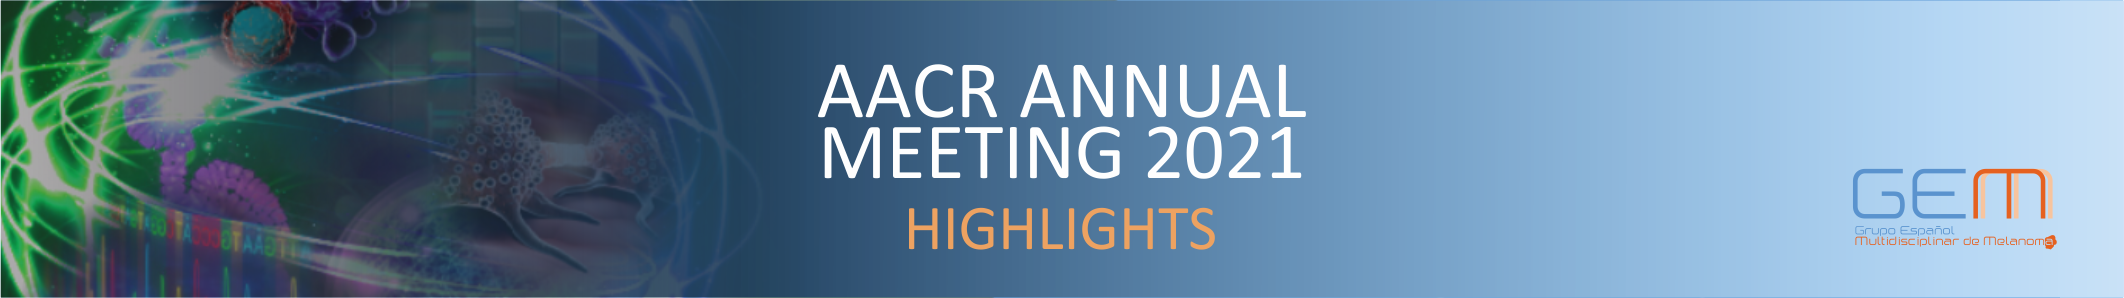 GEM_Highlights AACR 2021_ banner WEB